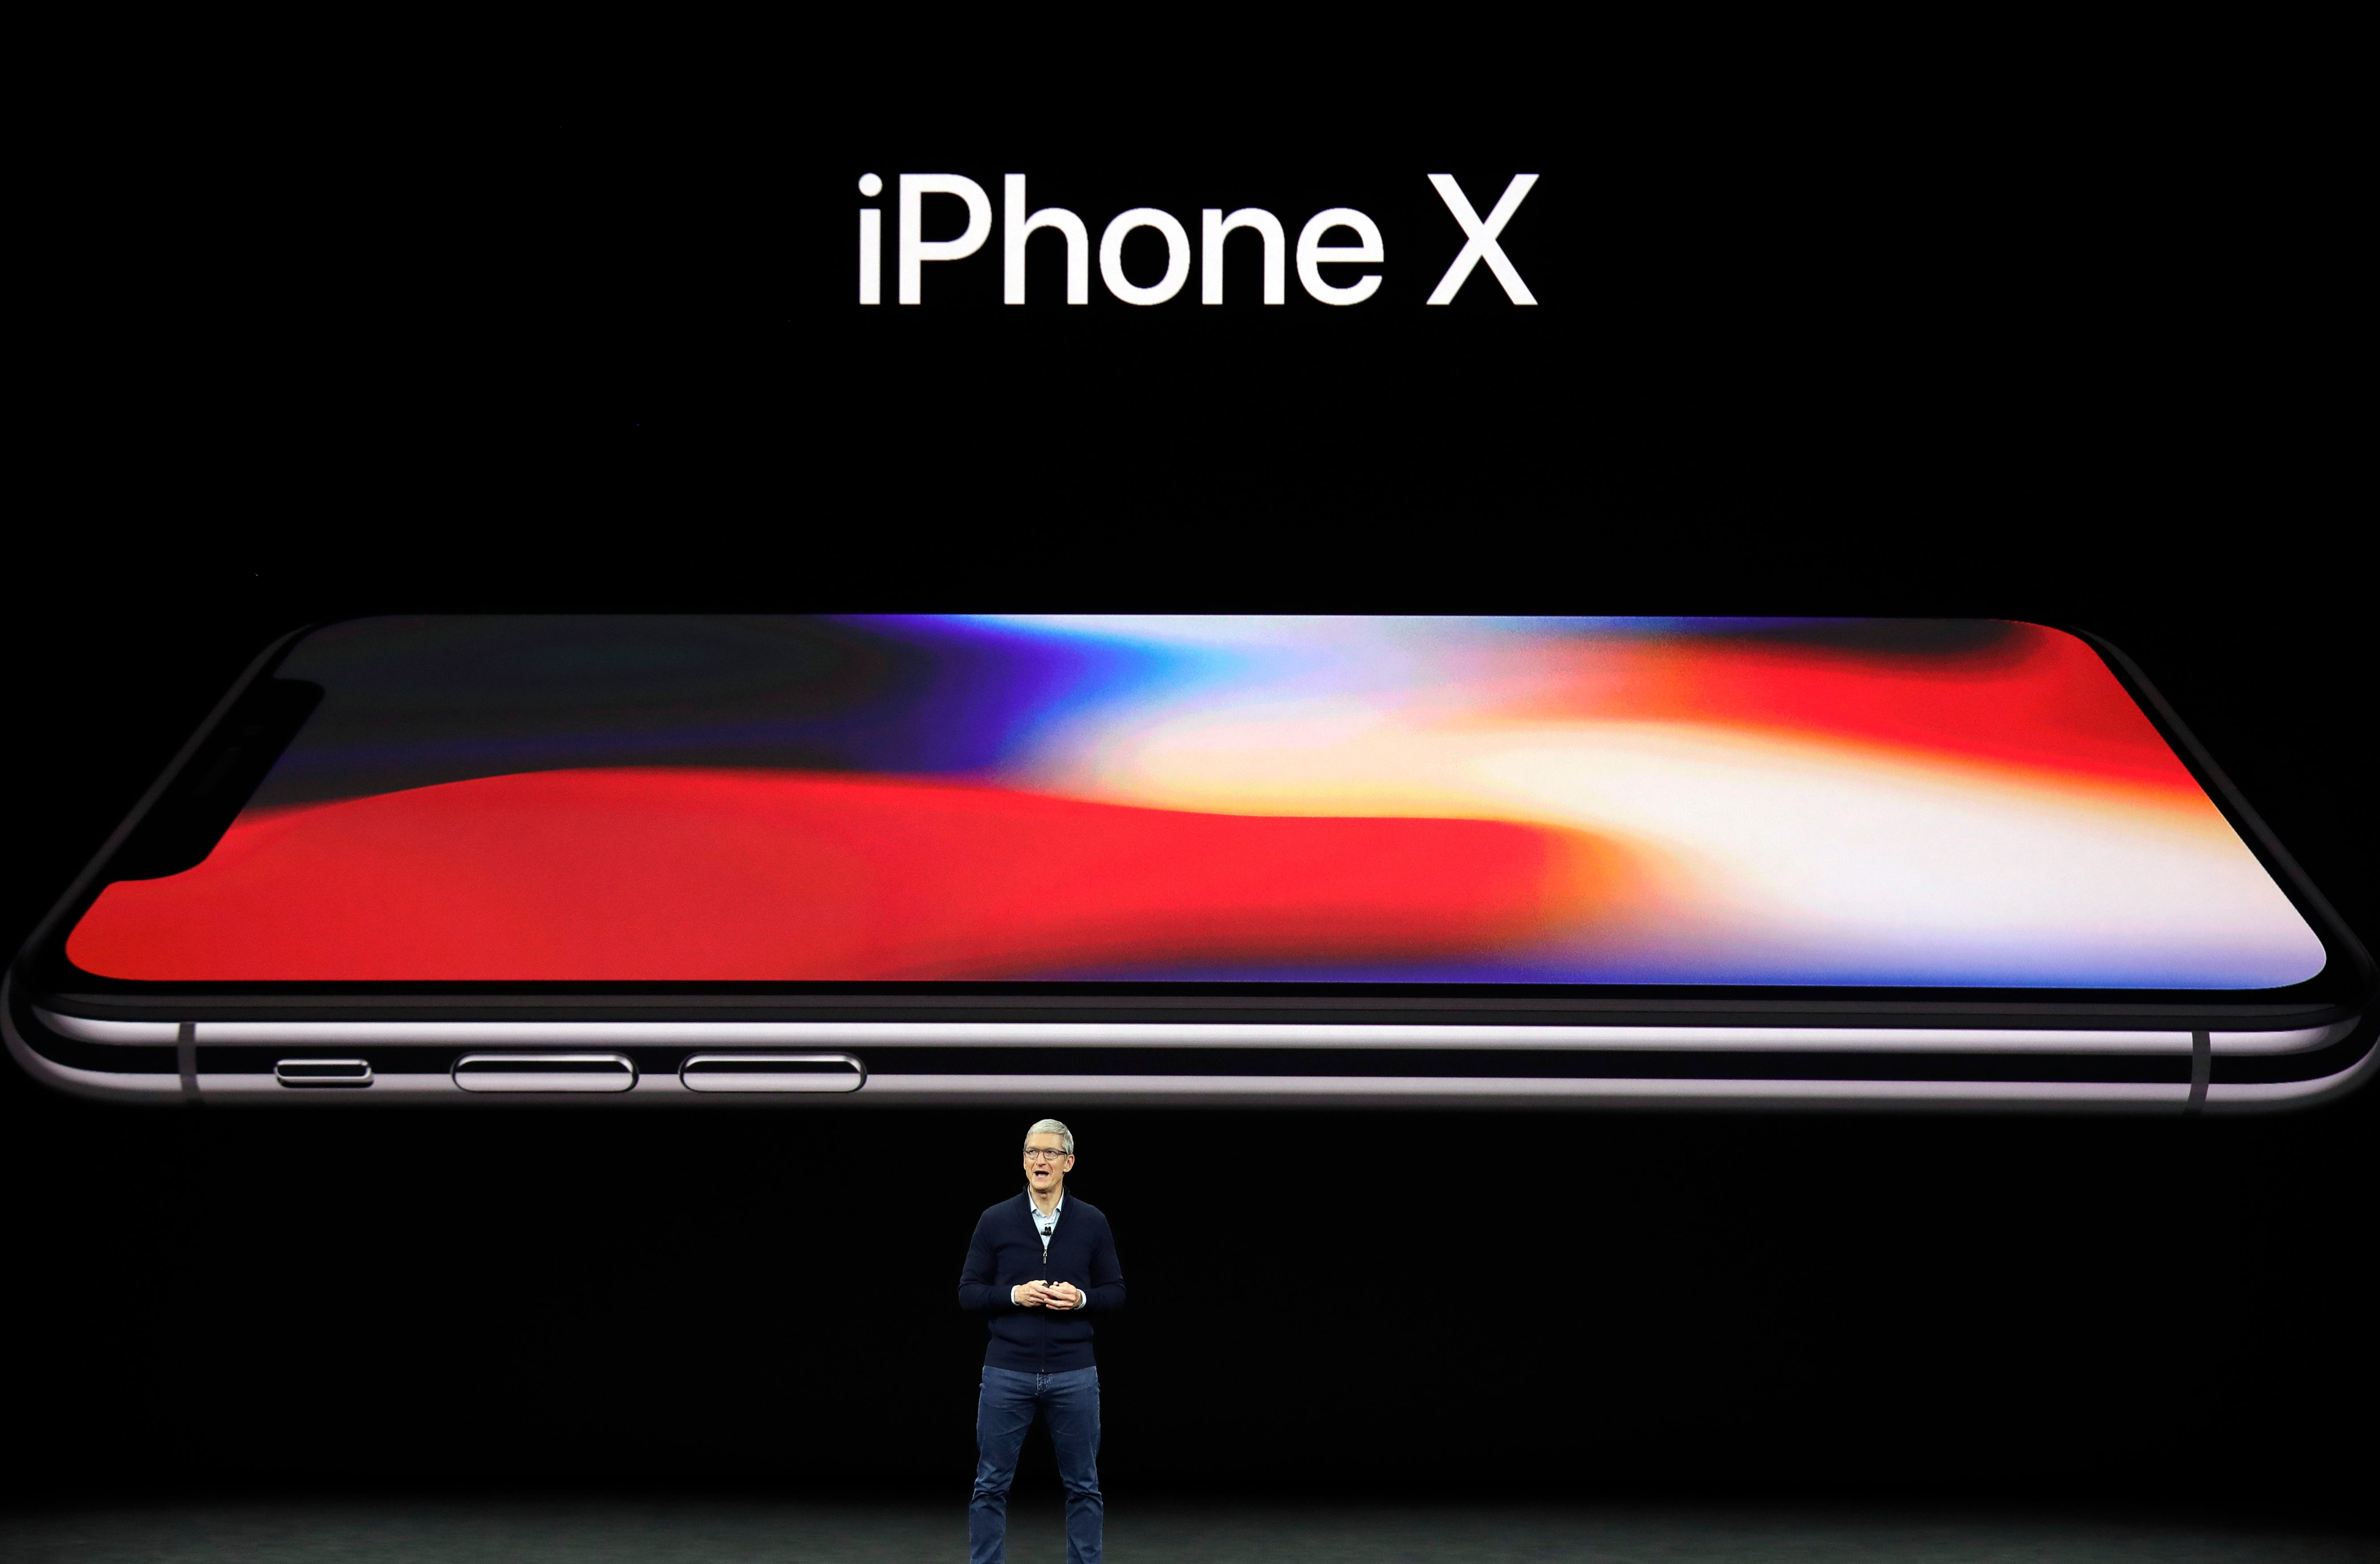 IPhone X Pricing, Features Vs. IPhone 8 And 8 Plus: Which Is Better For You?